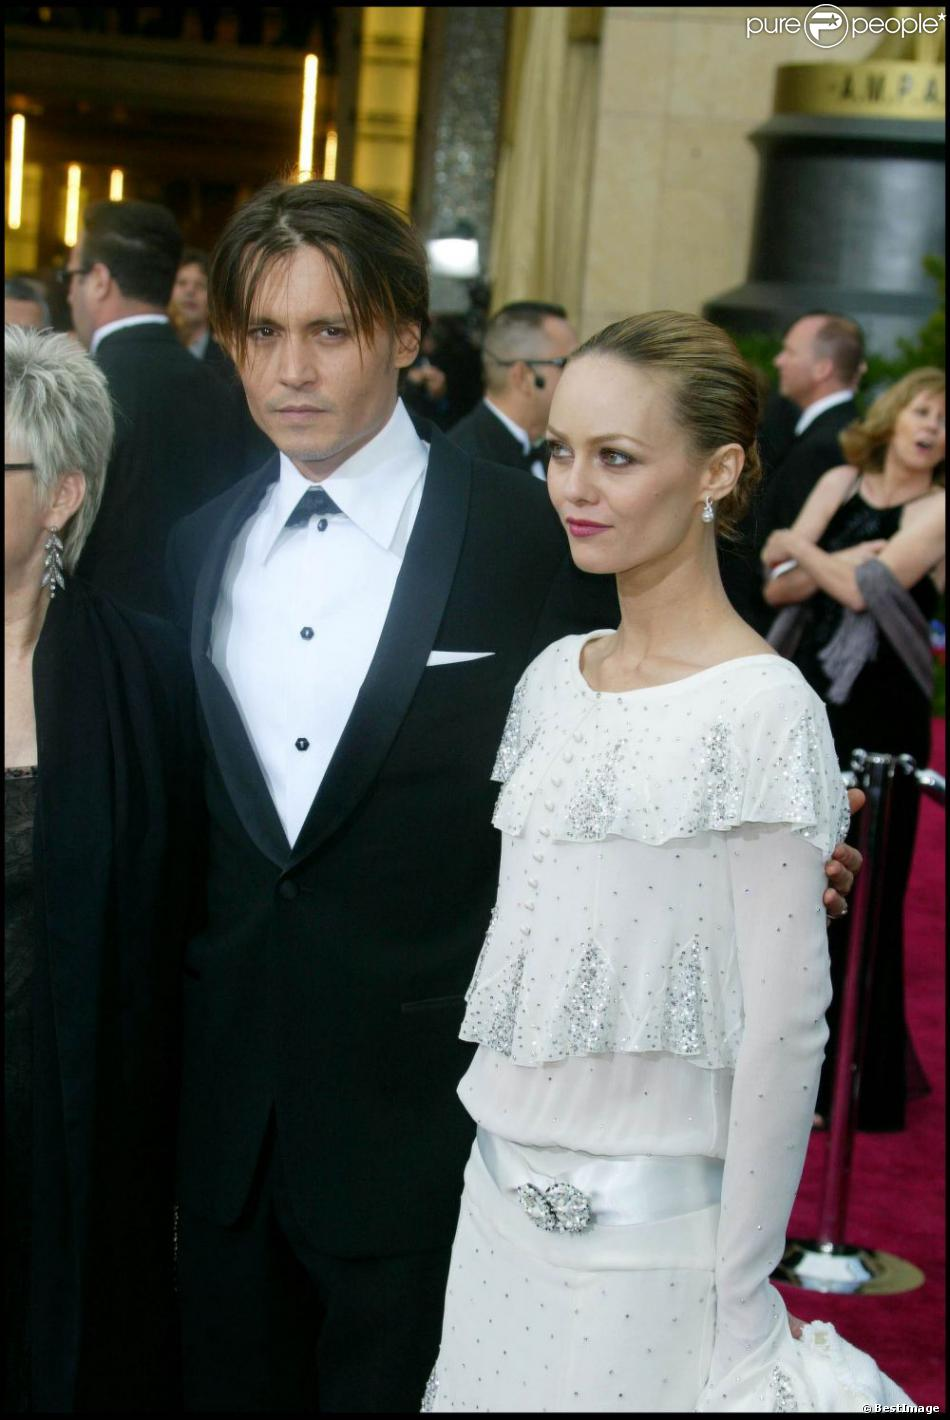 vanessa paradis et johnny depp un couple mythique purepeople. Black Bedroom Furniture Sets. Home Design Ideas